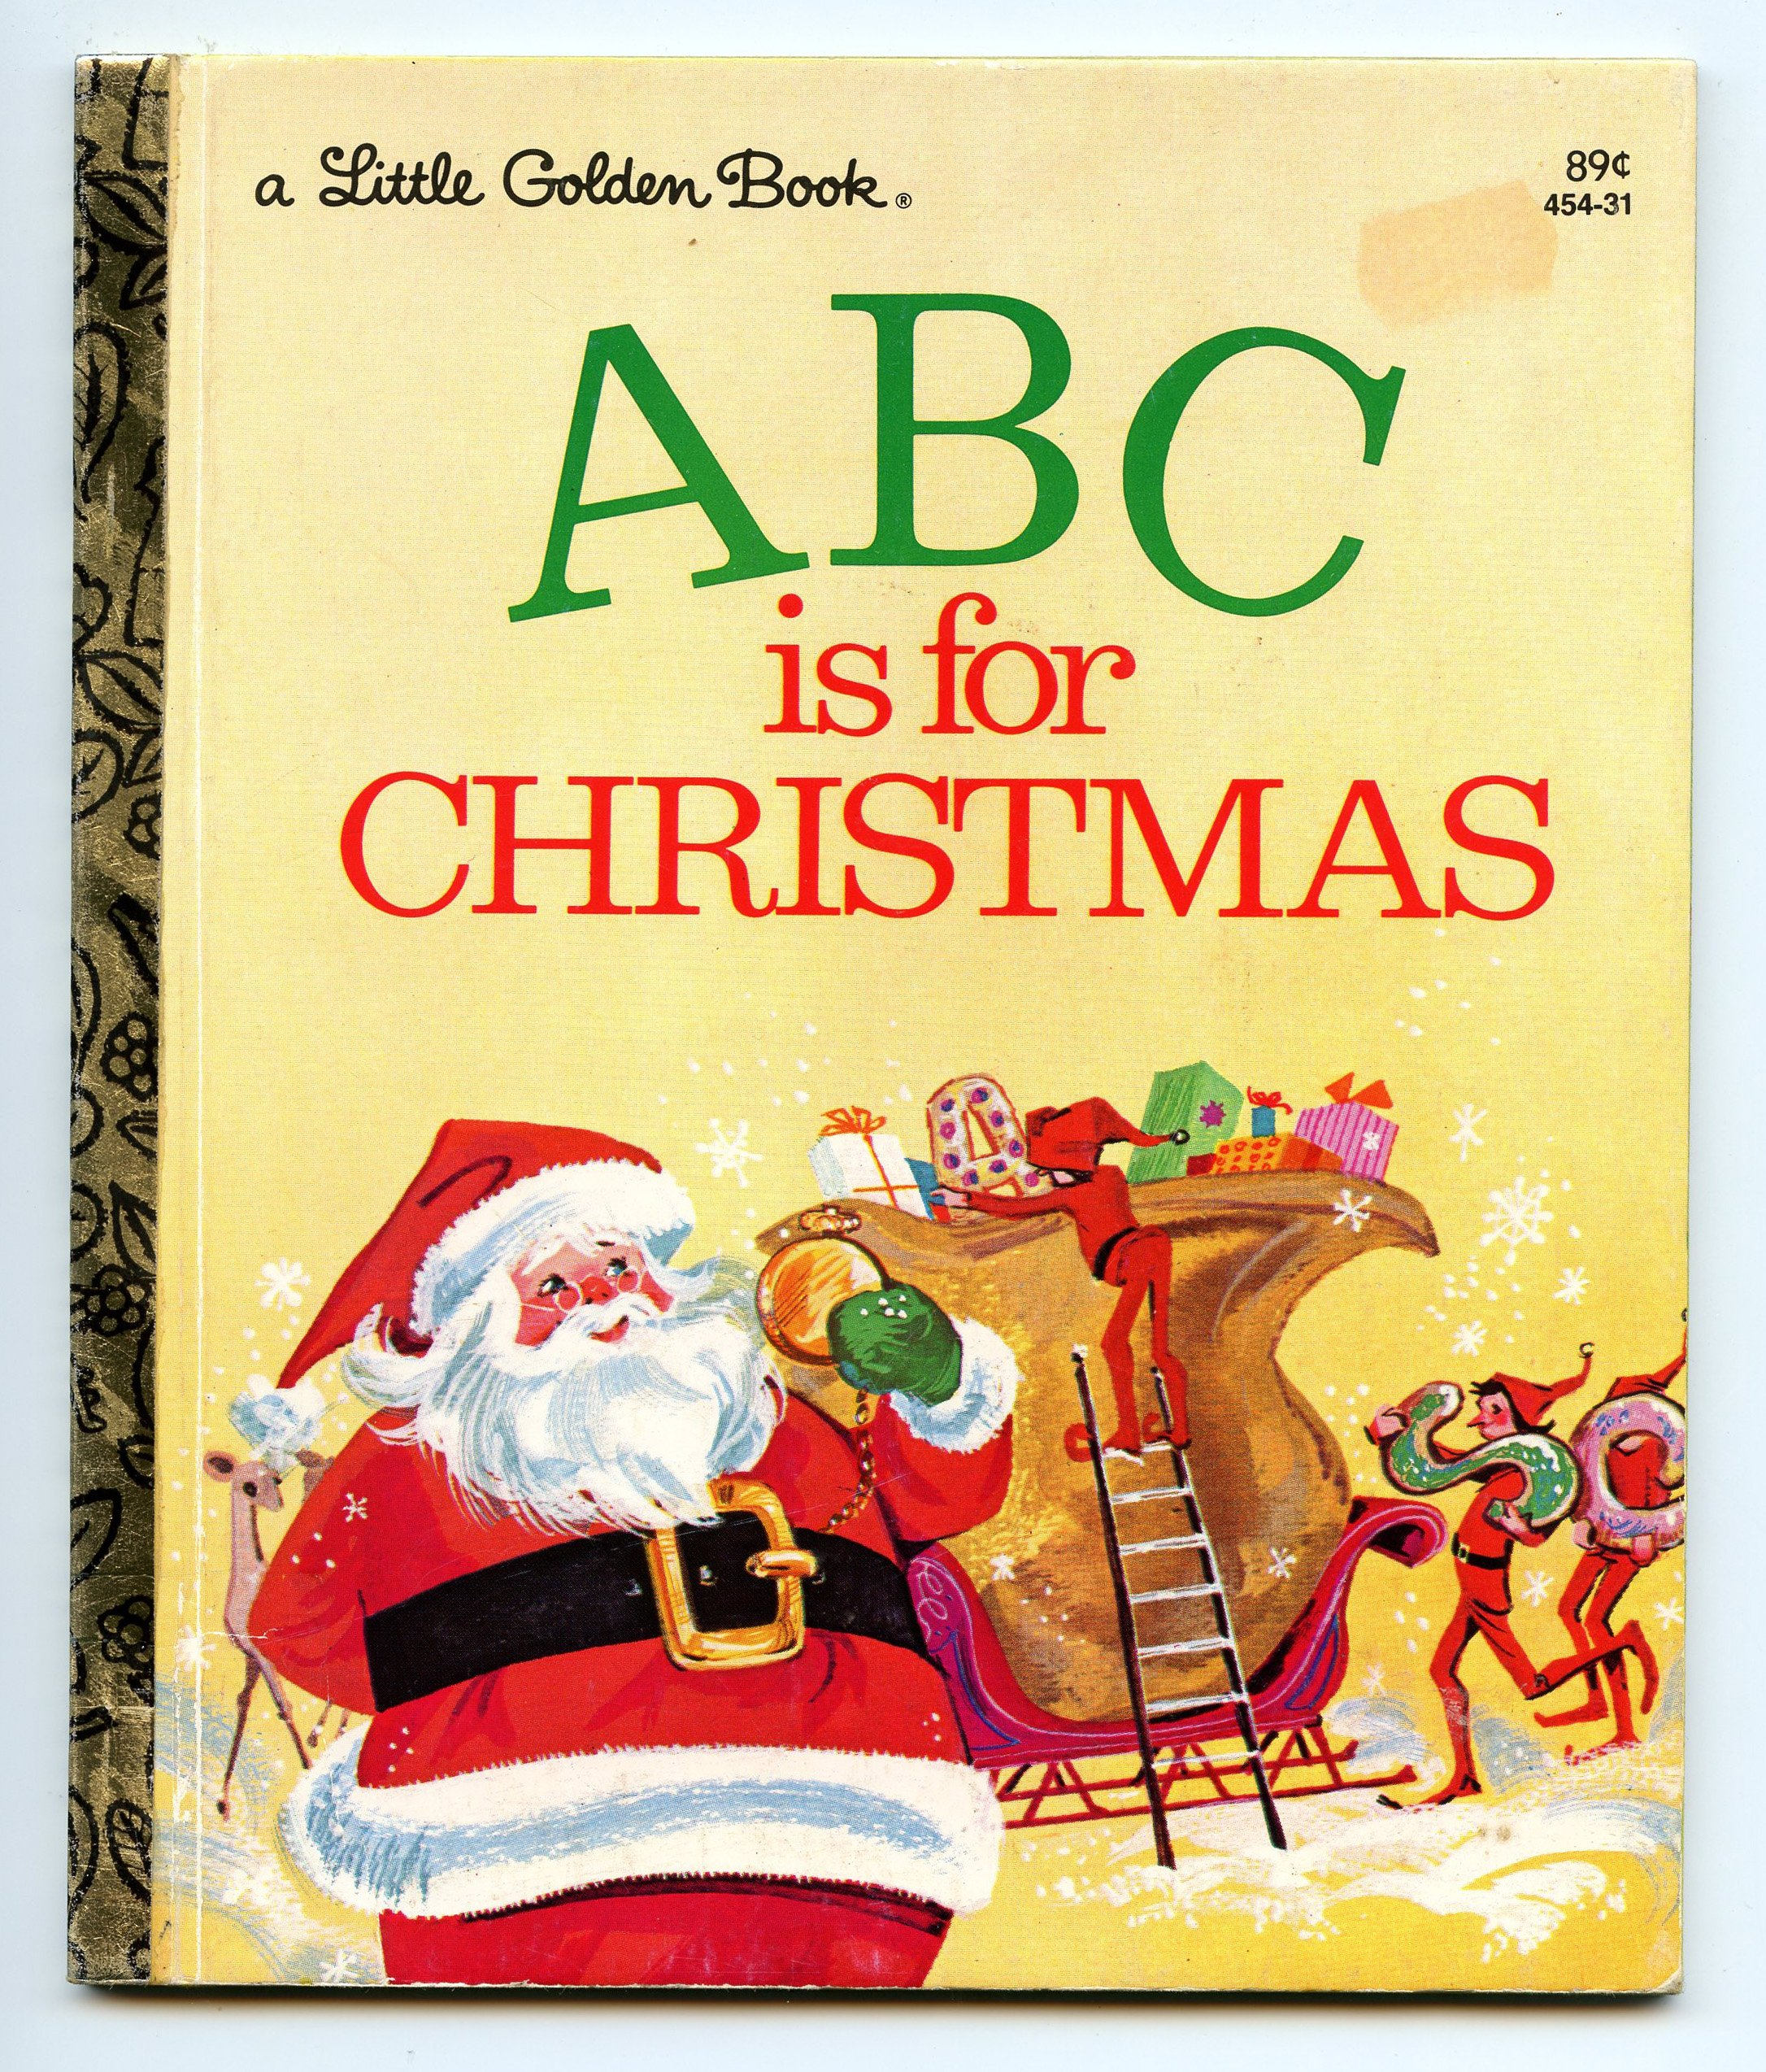 ABC is for Christmas: Jane Werner with illustrations by Sally